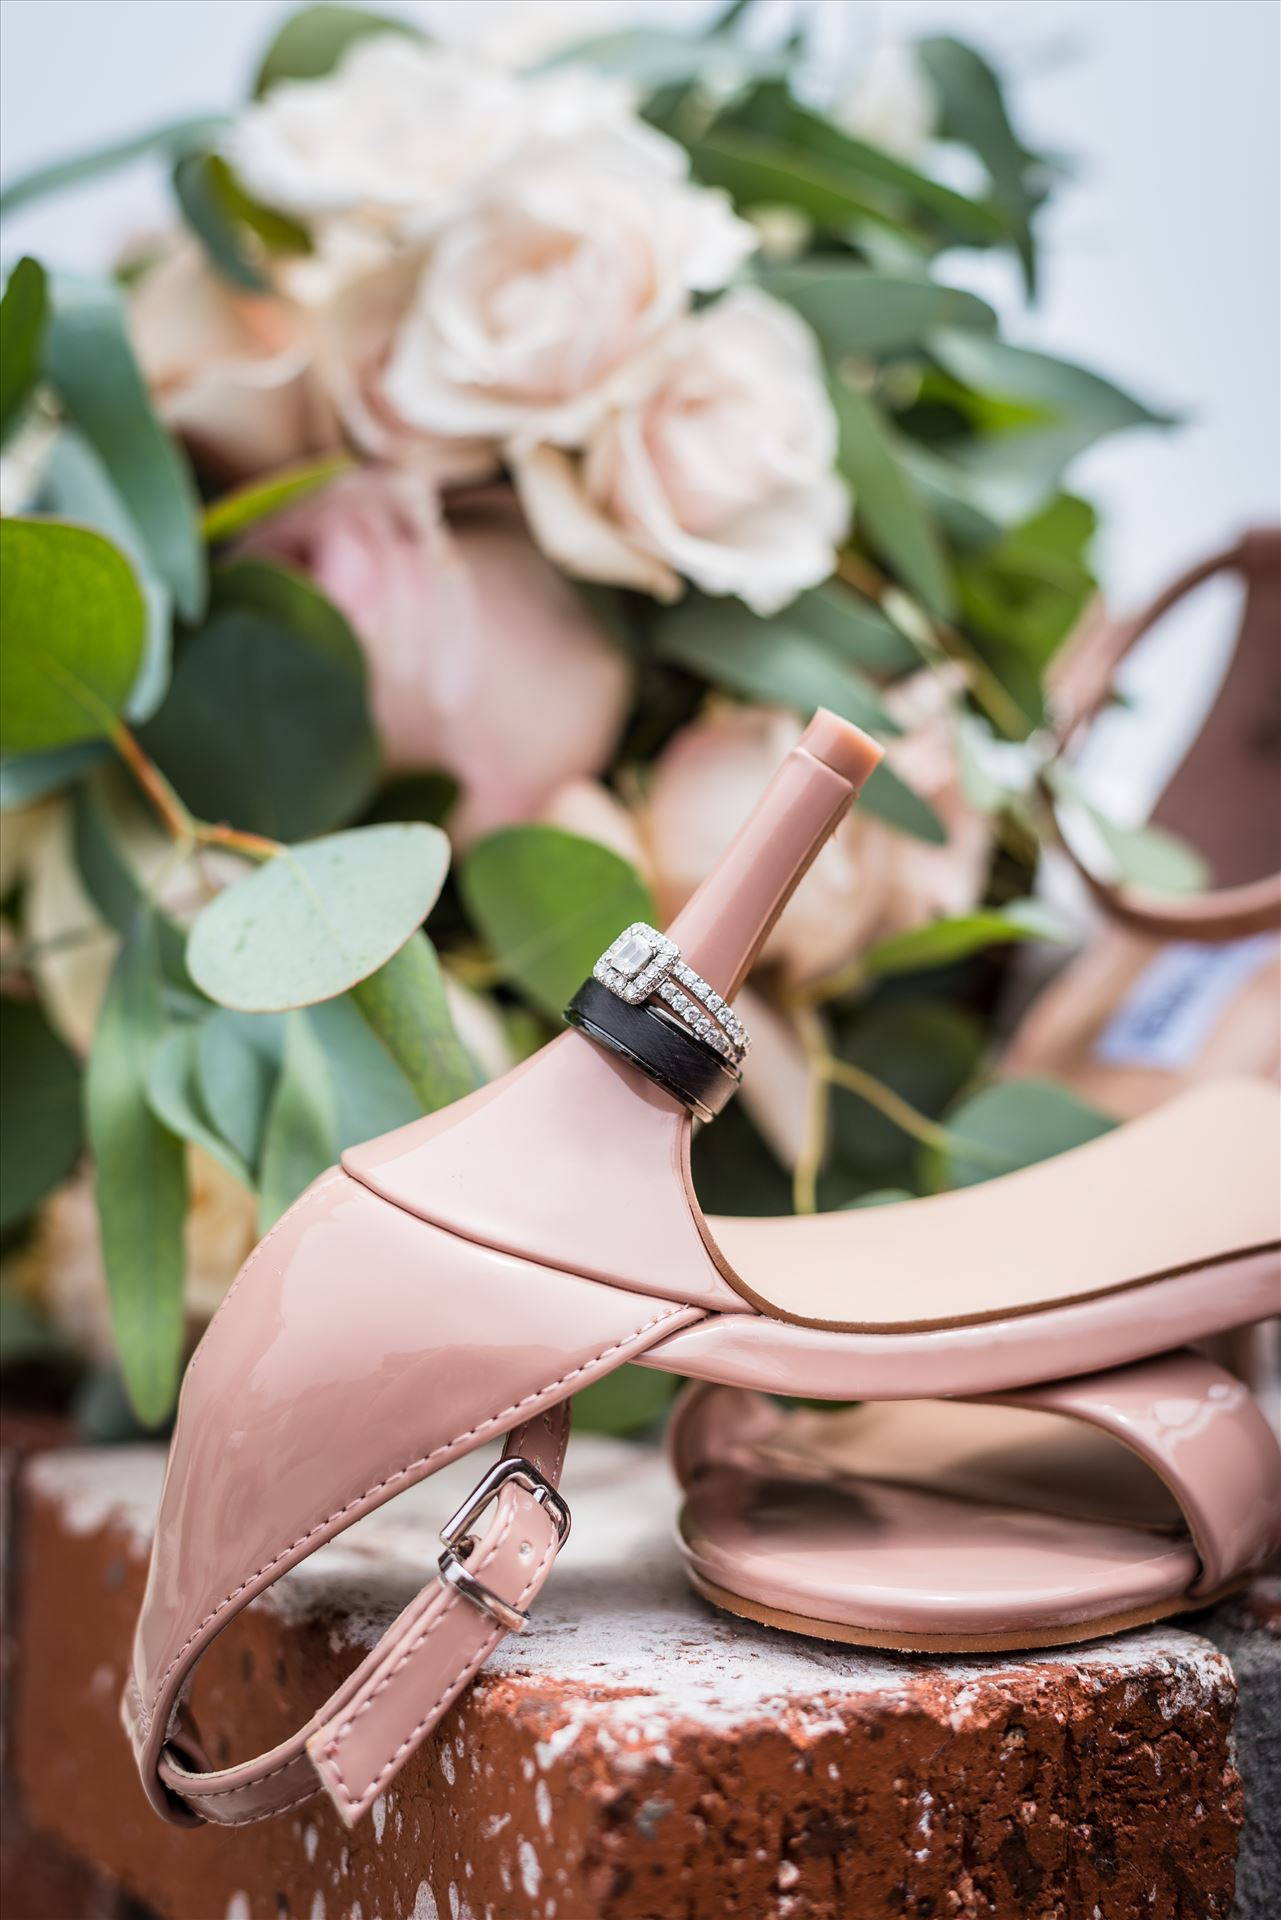 FW-5919.JPG - Cayucos California Beach and Bluffs Wedding near Morro Bay and Cambria with romantic chic flair by Mirror's Edge Photography, San Luis Obispo County Wedding Photographer.  Wedding rings, flowers and brides shoes by Sarah Williams